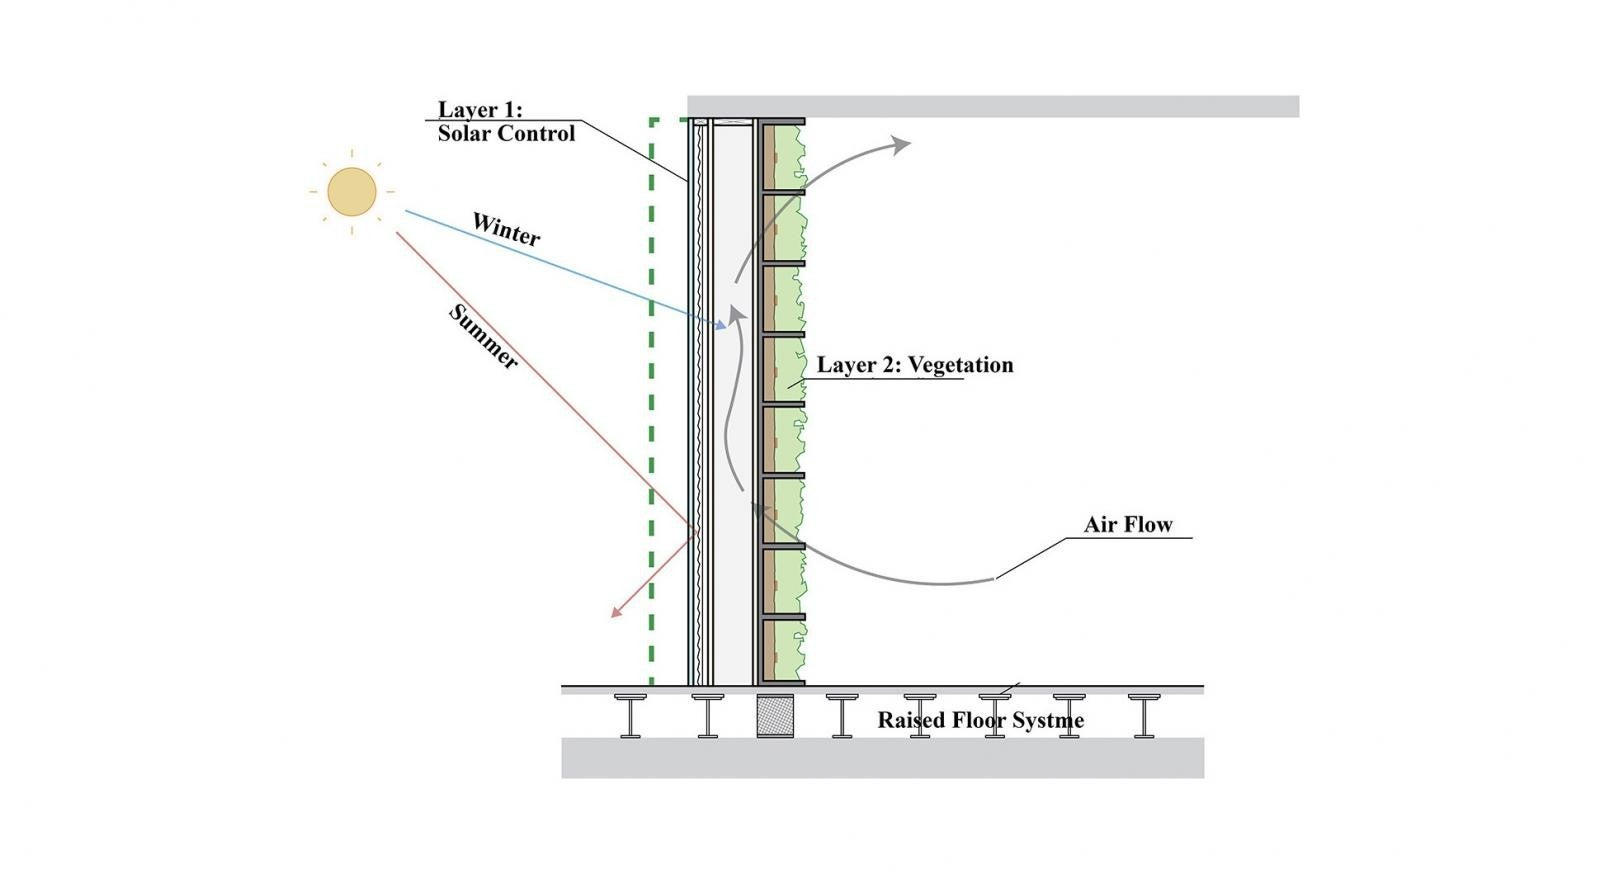 Green wall graphic with layer 1: solar control and layer 2: vegetation.